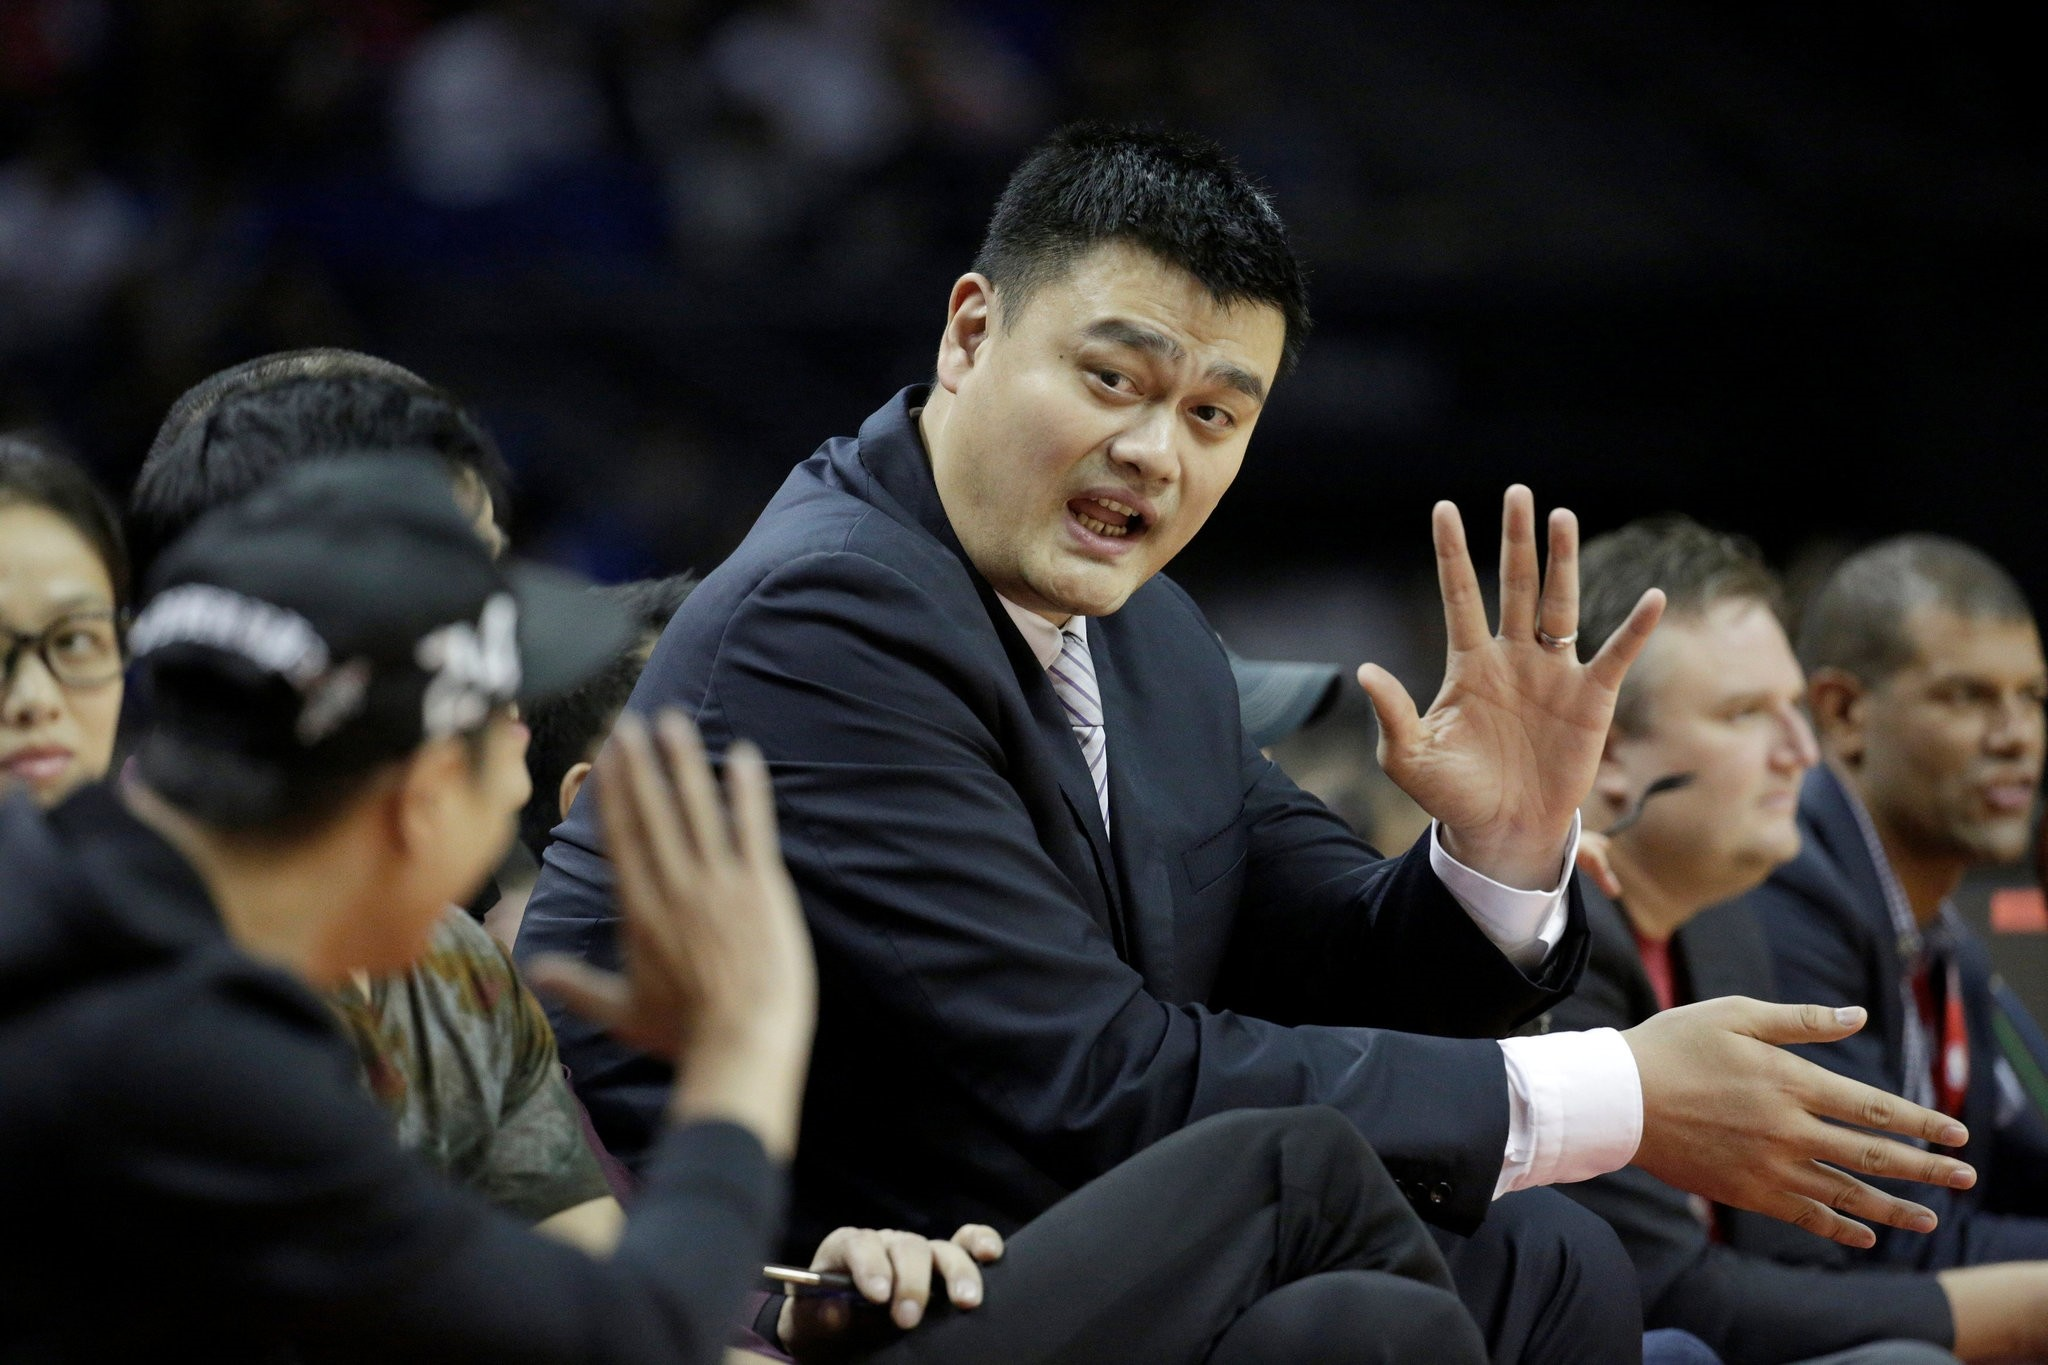 Basketball - NBA Global Games - Shanghai, China - 09/10/16. Houston Rockets v New Orleans Pelicans Former Houston Rockets player Yao Ming is seen. (REUTERS Photo)